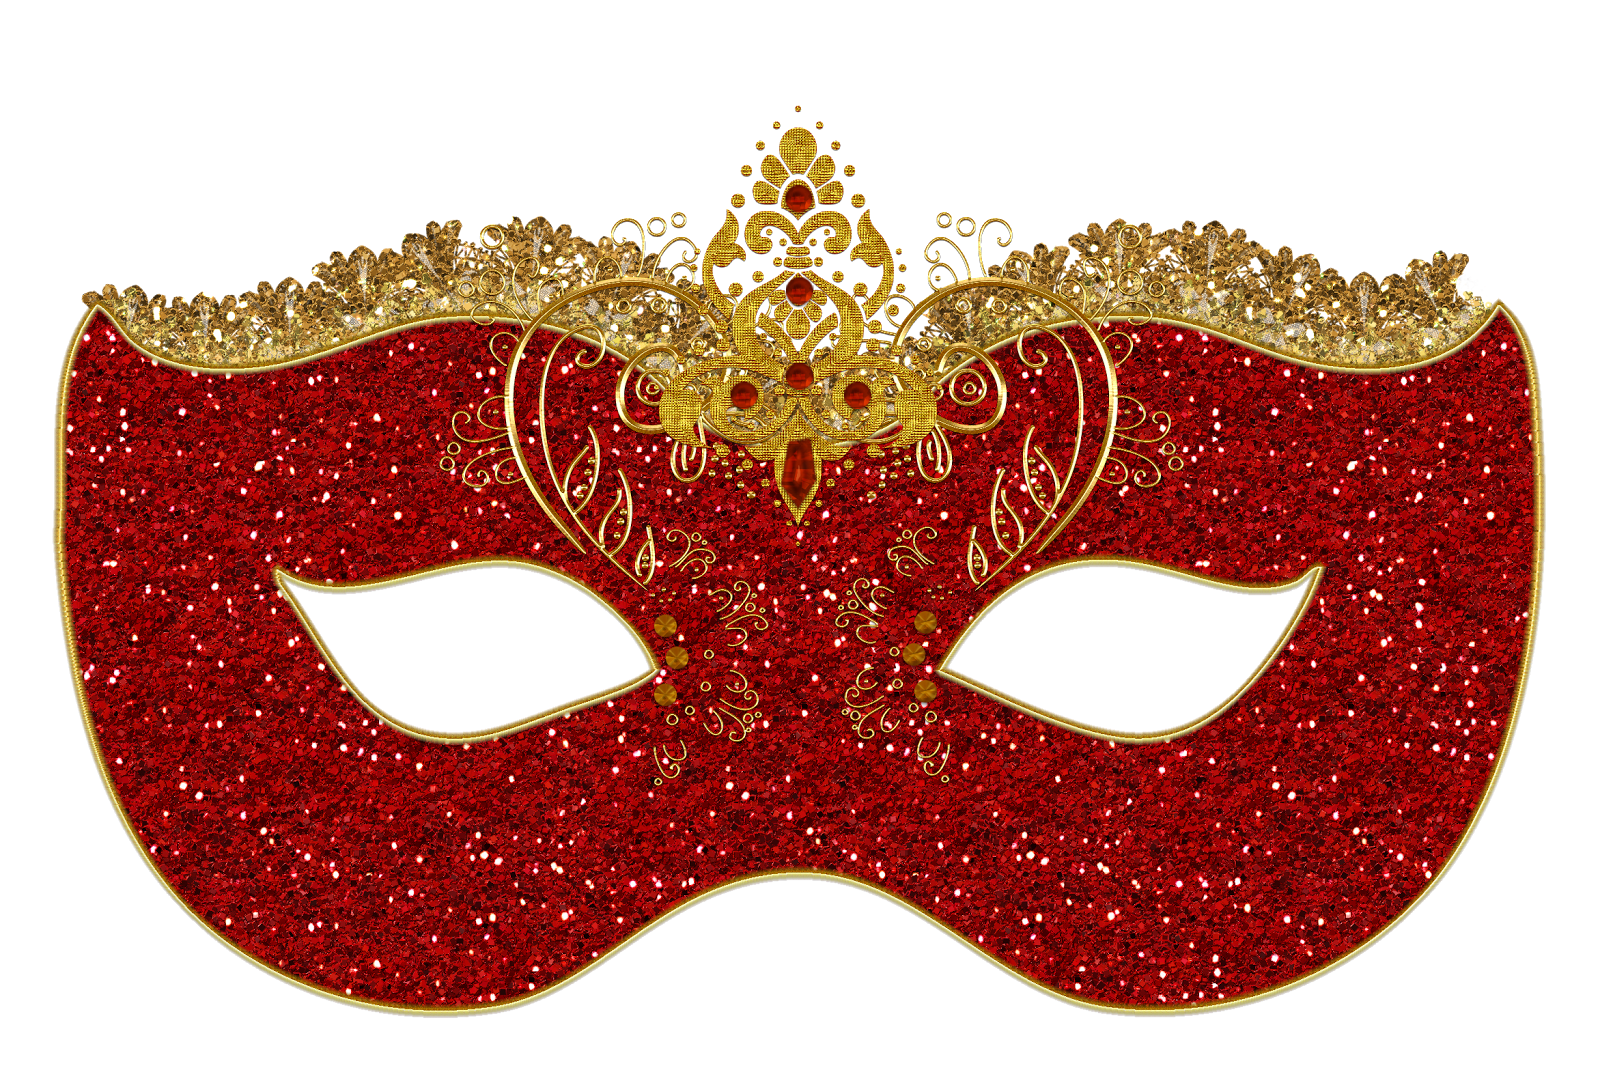 PNG File Name: Mask PlusPng.com  - Mask PNG